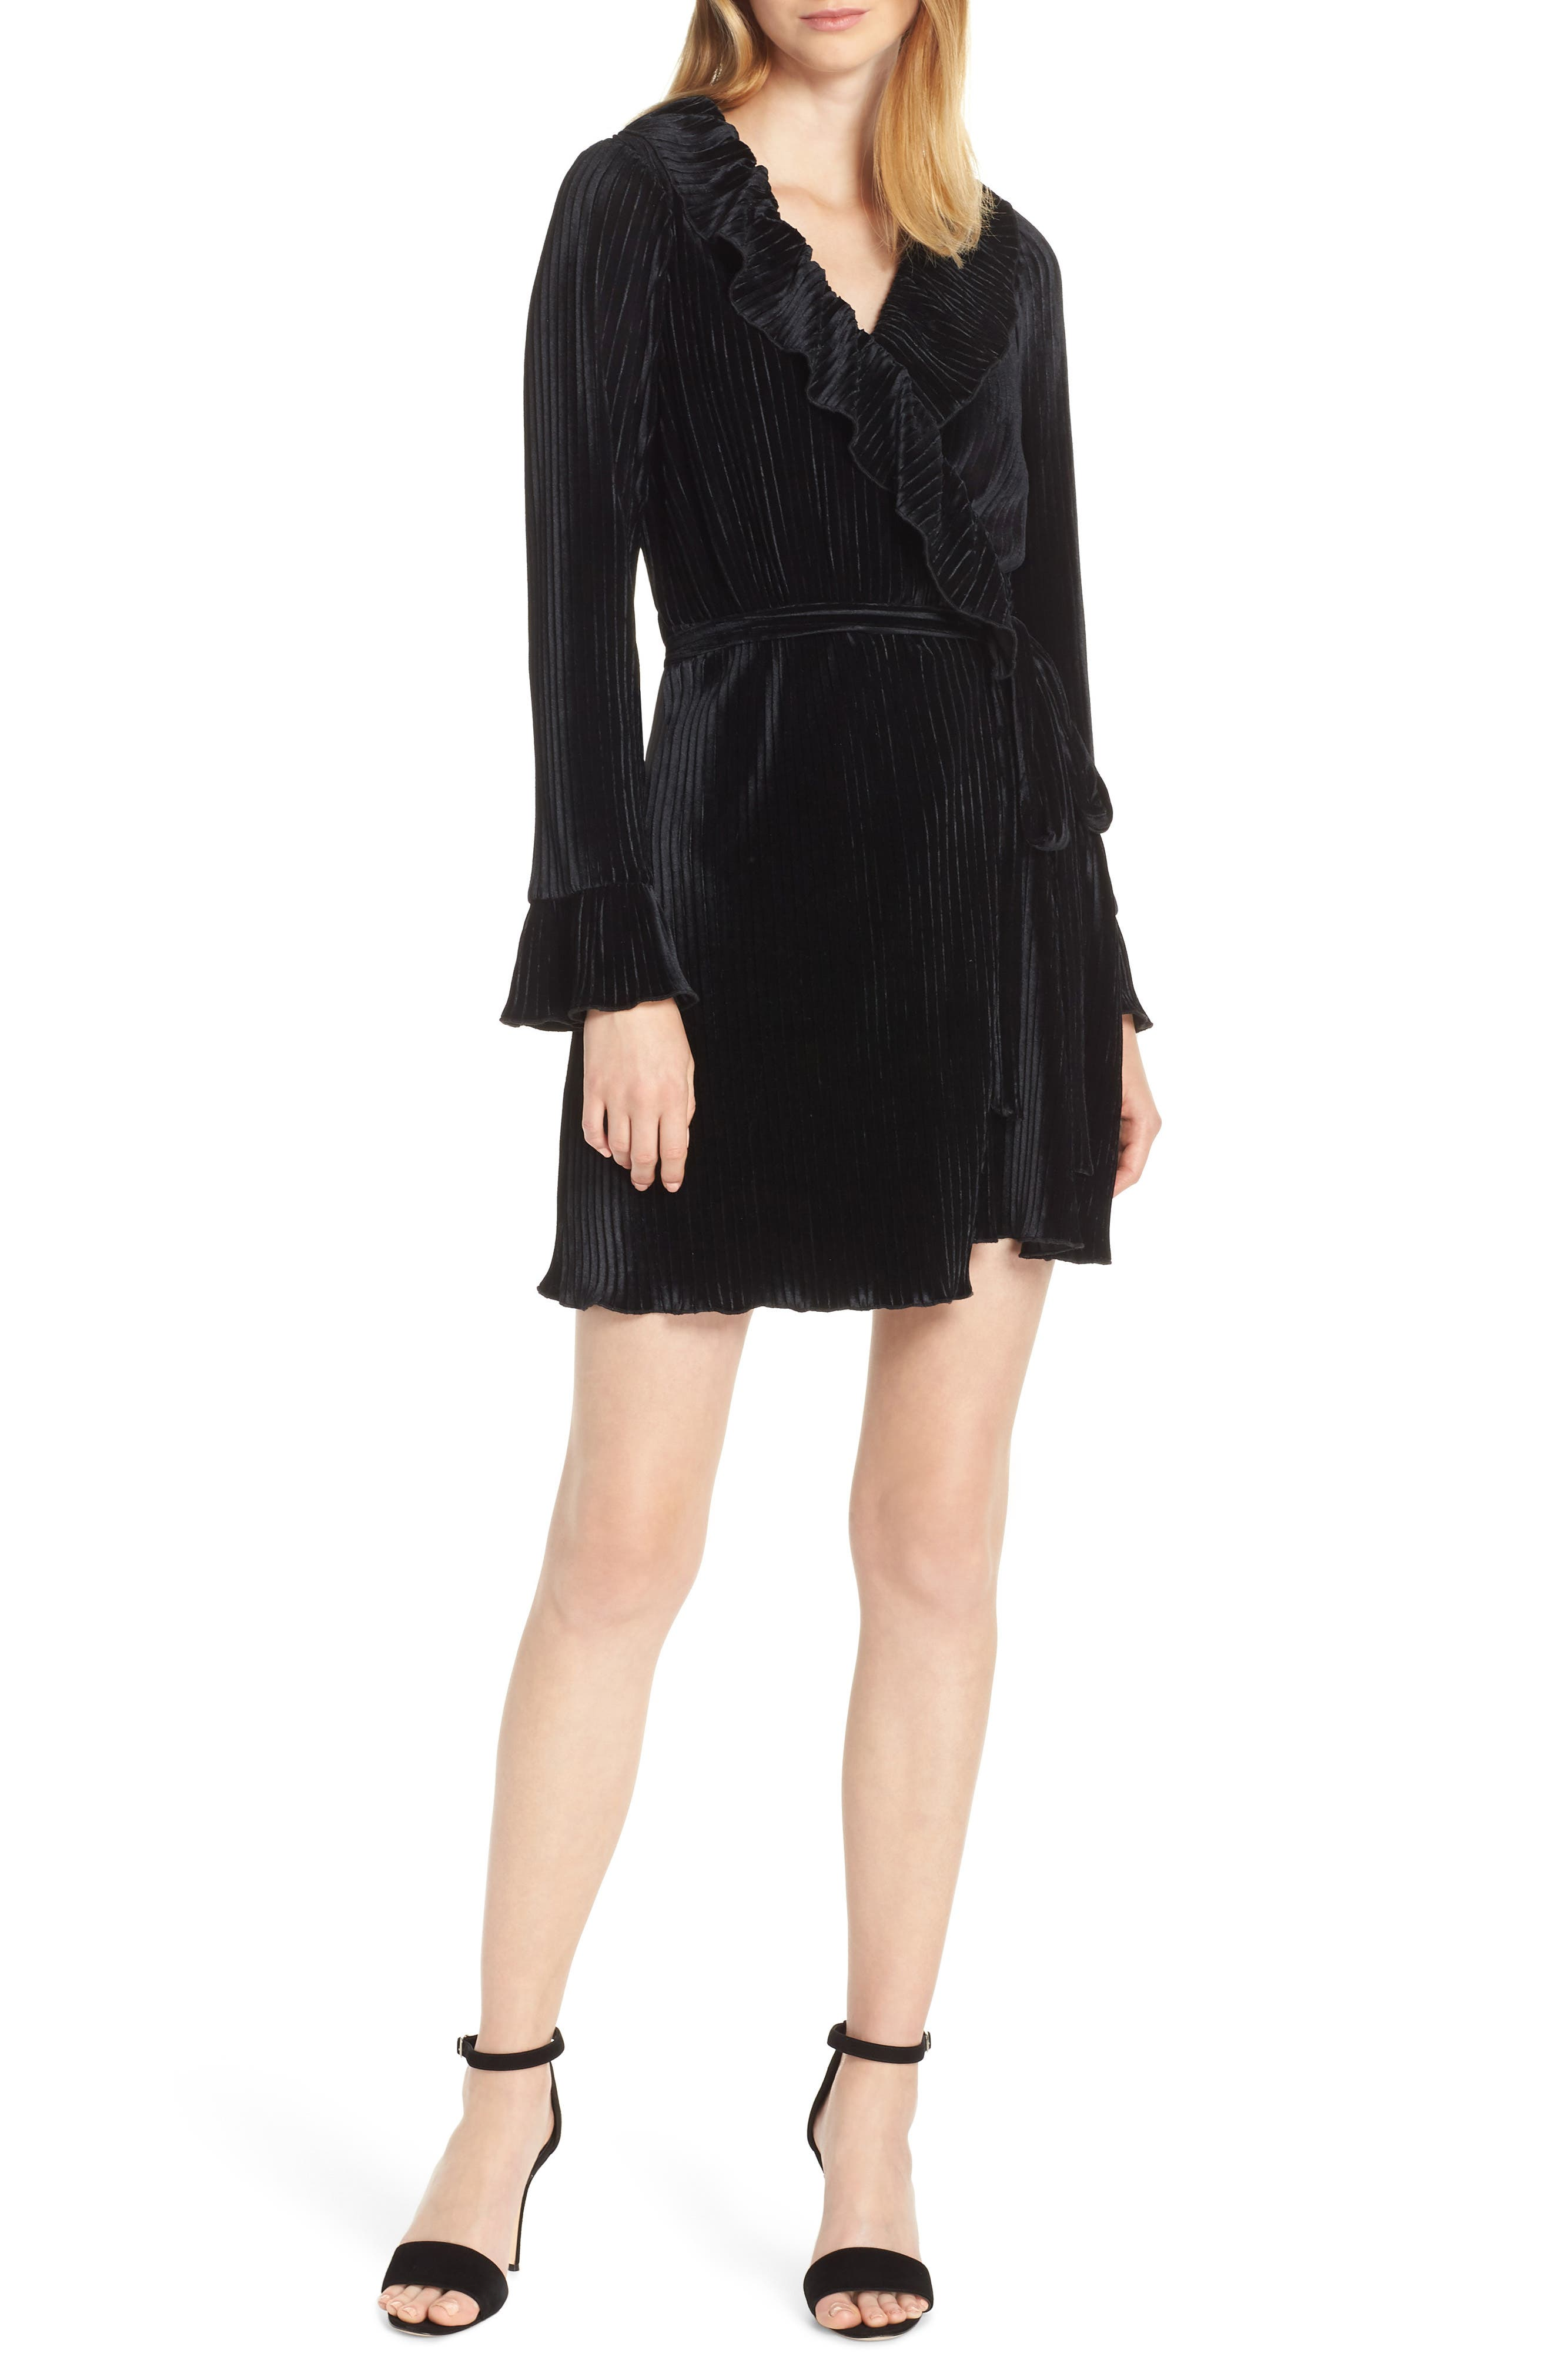 CHARLES HENRY Pleat Wrap Dress in Black Velvet